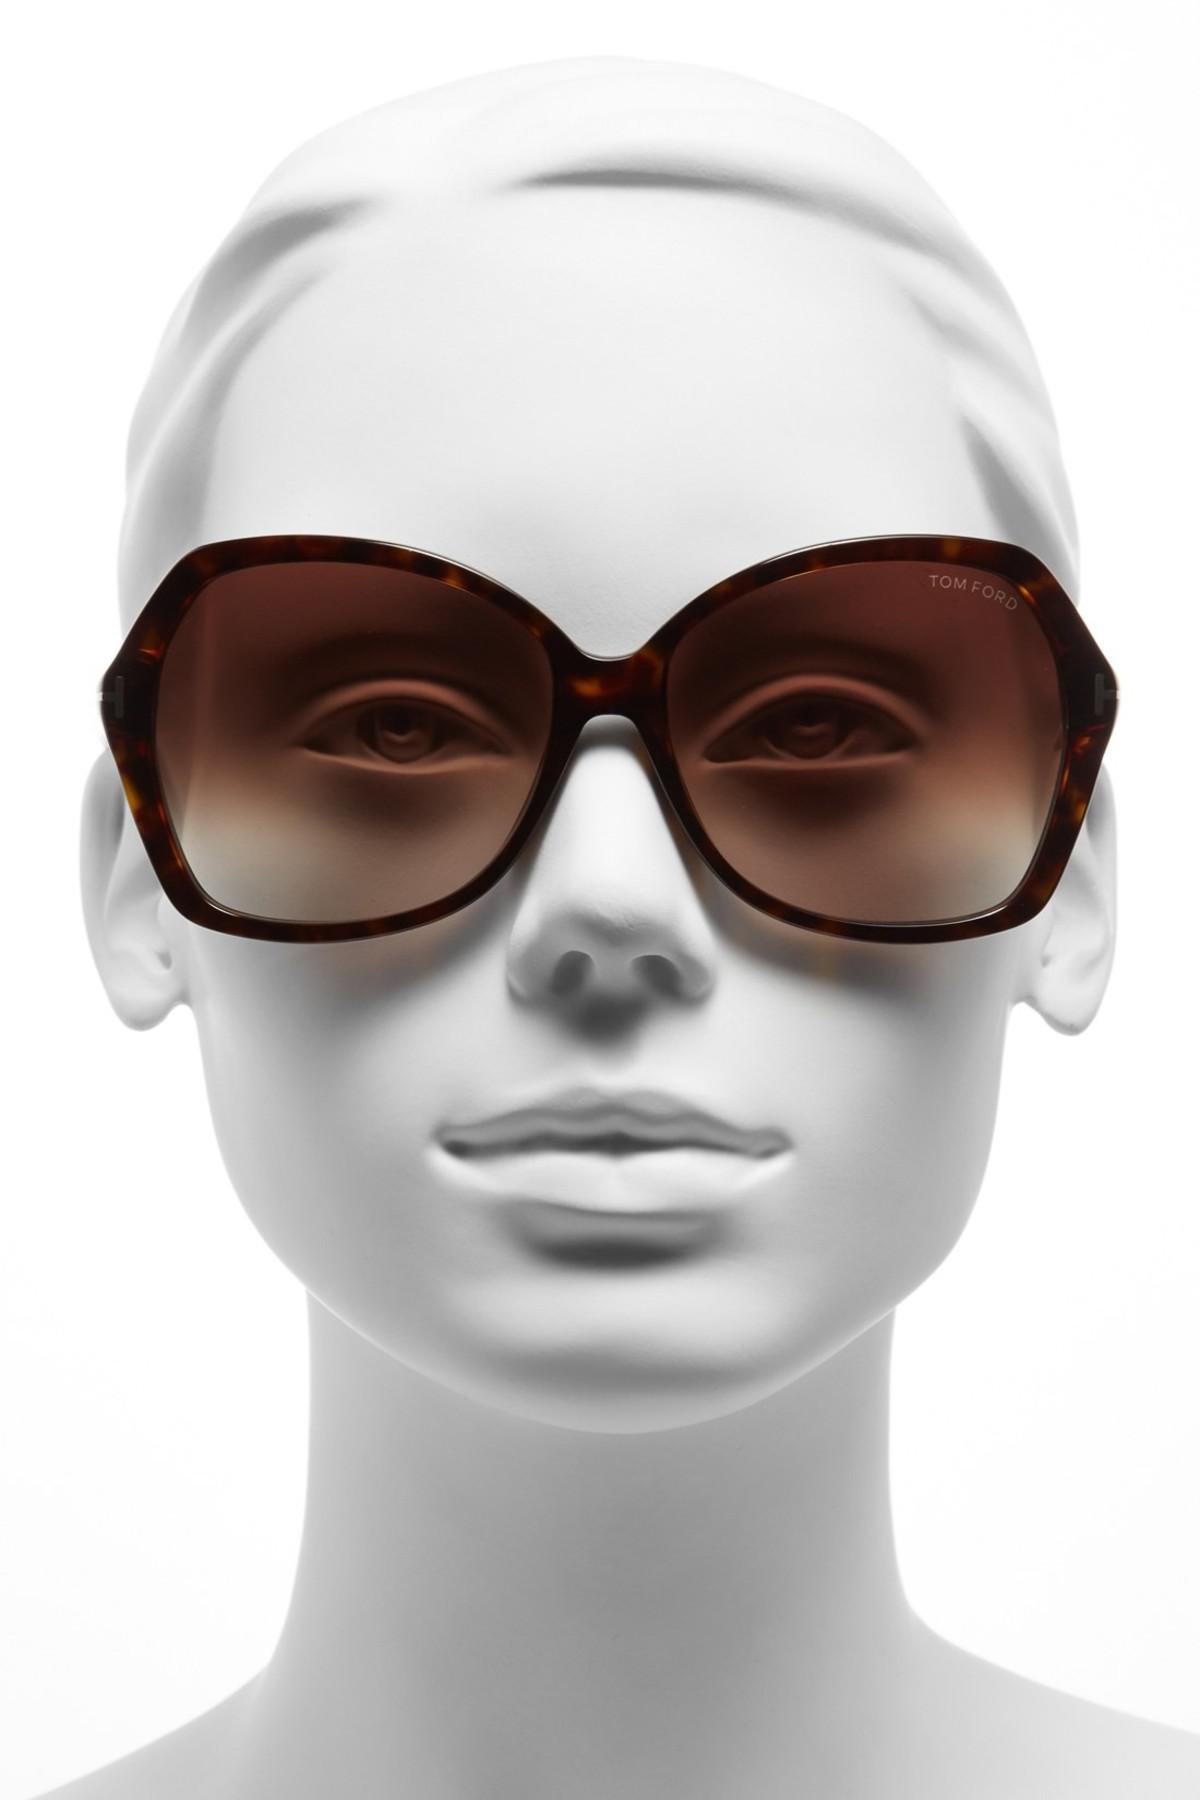 ad94053dc26 Lyst - Tom Ford Women s Carola Butterfly Sunglasses in Brown